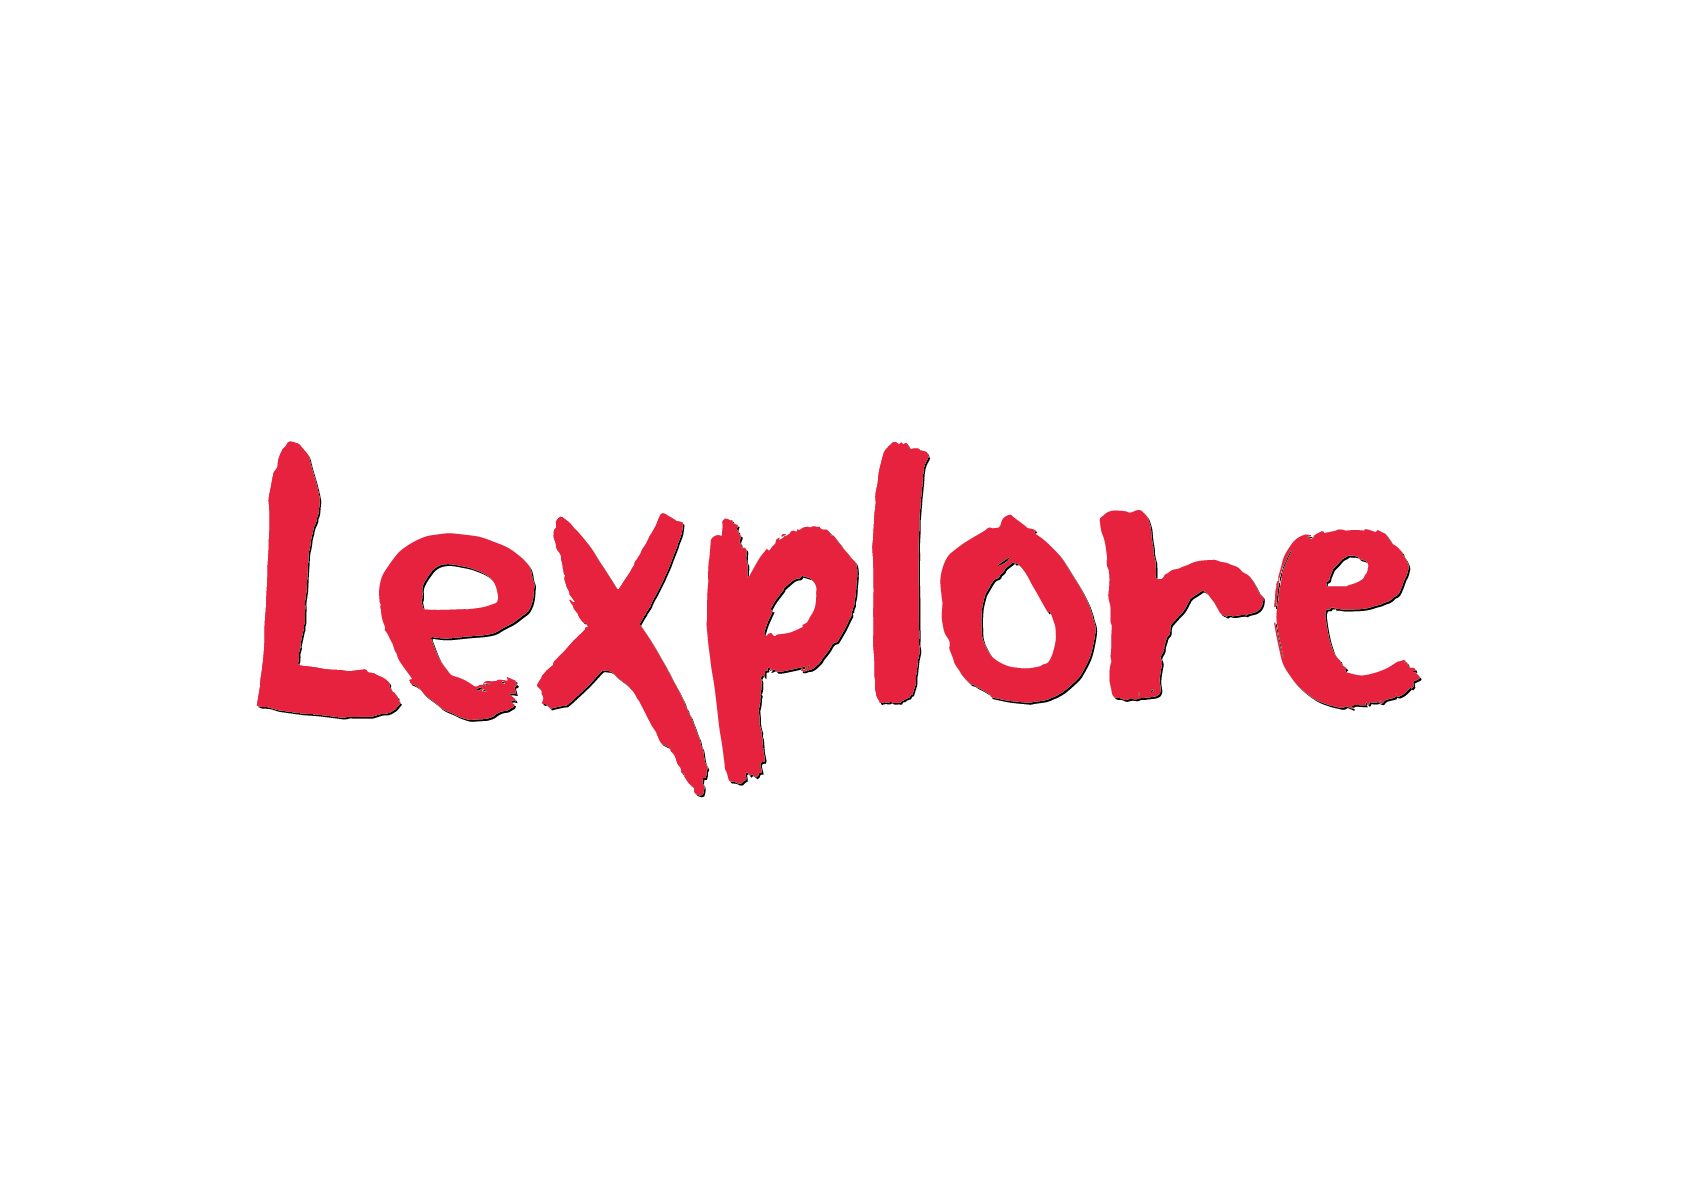 Lexplore_logo_red_shadow_high